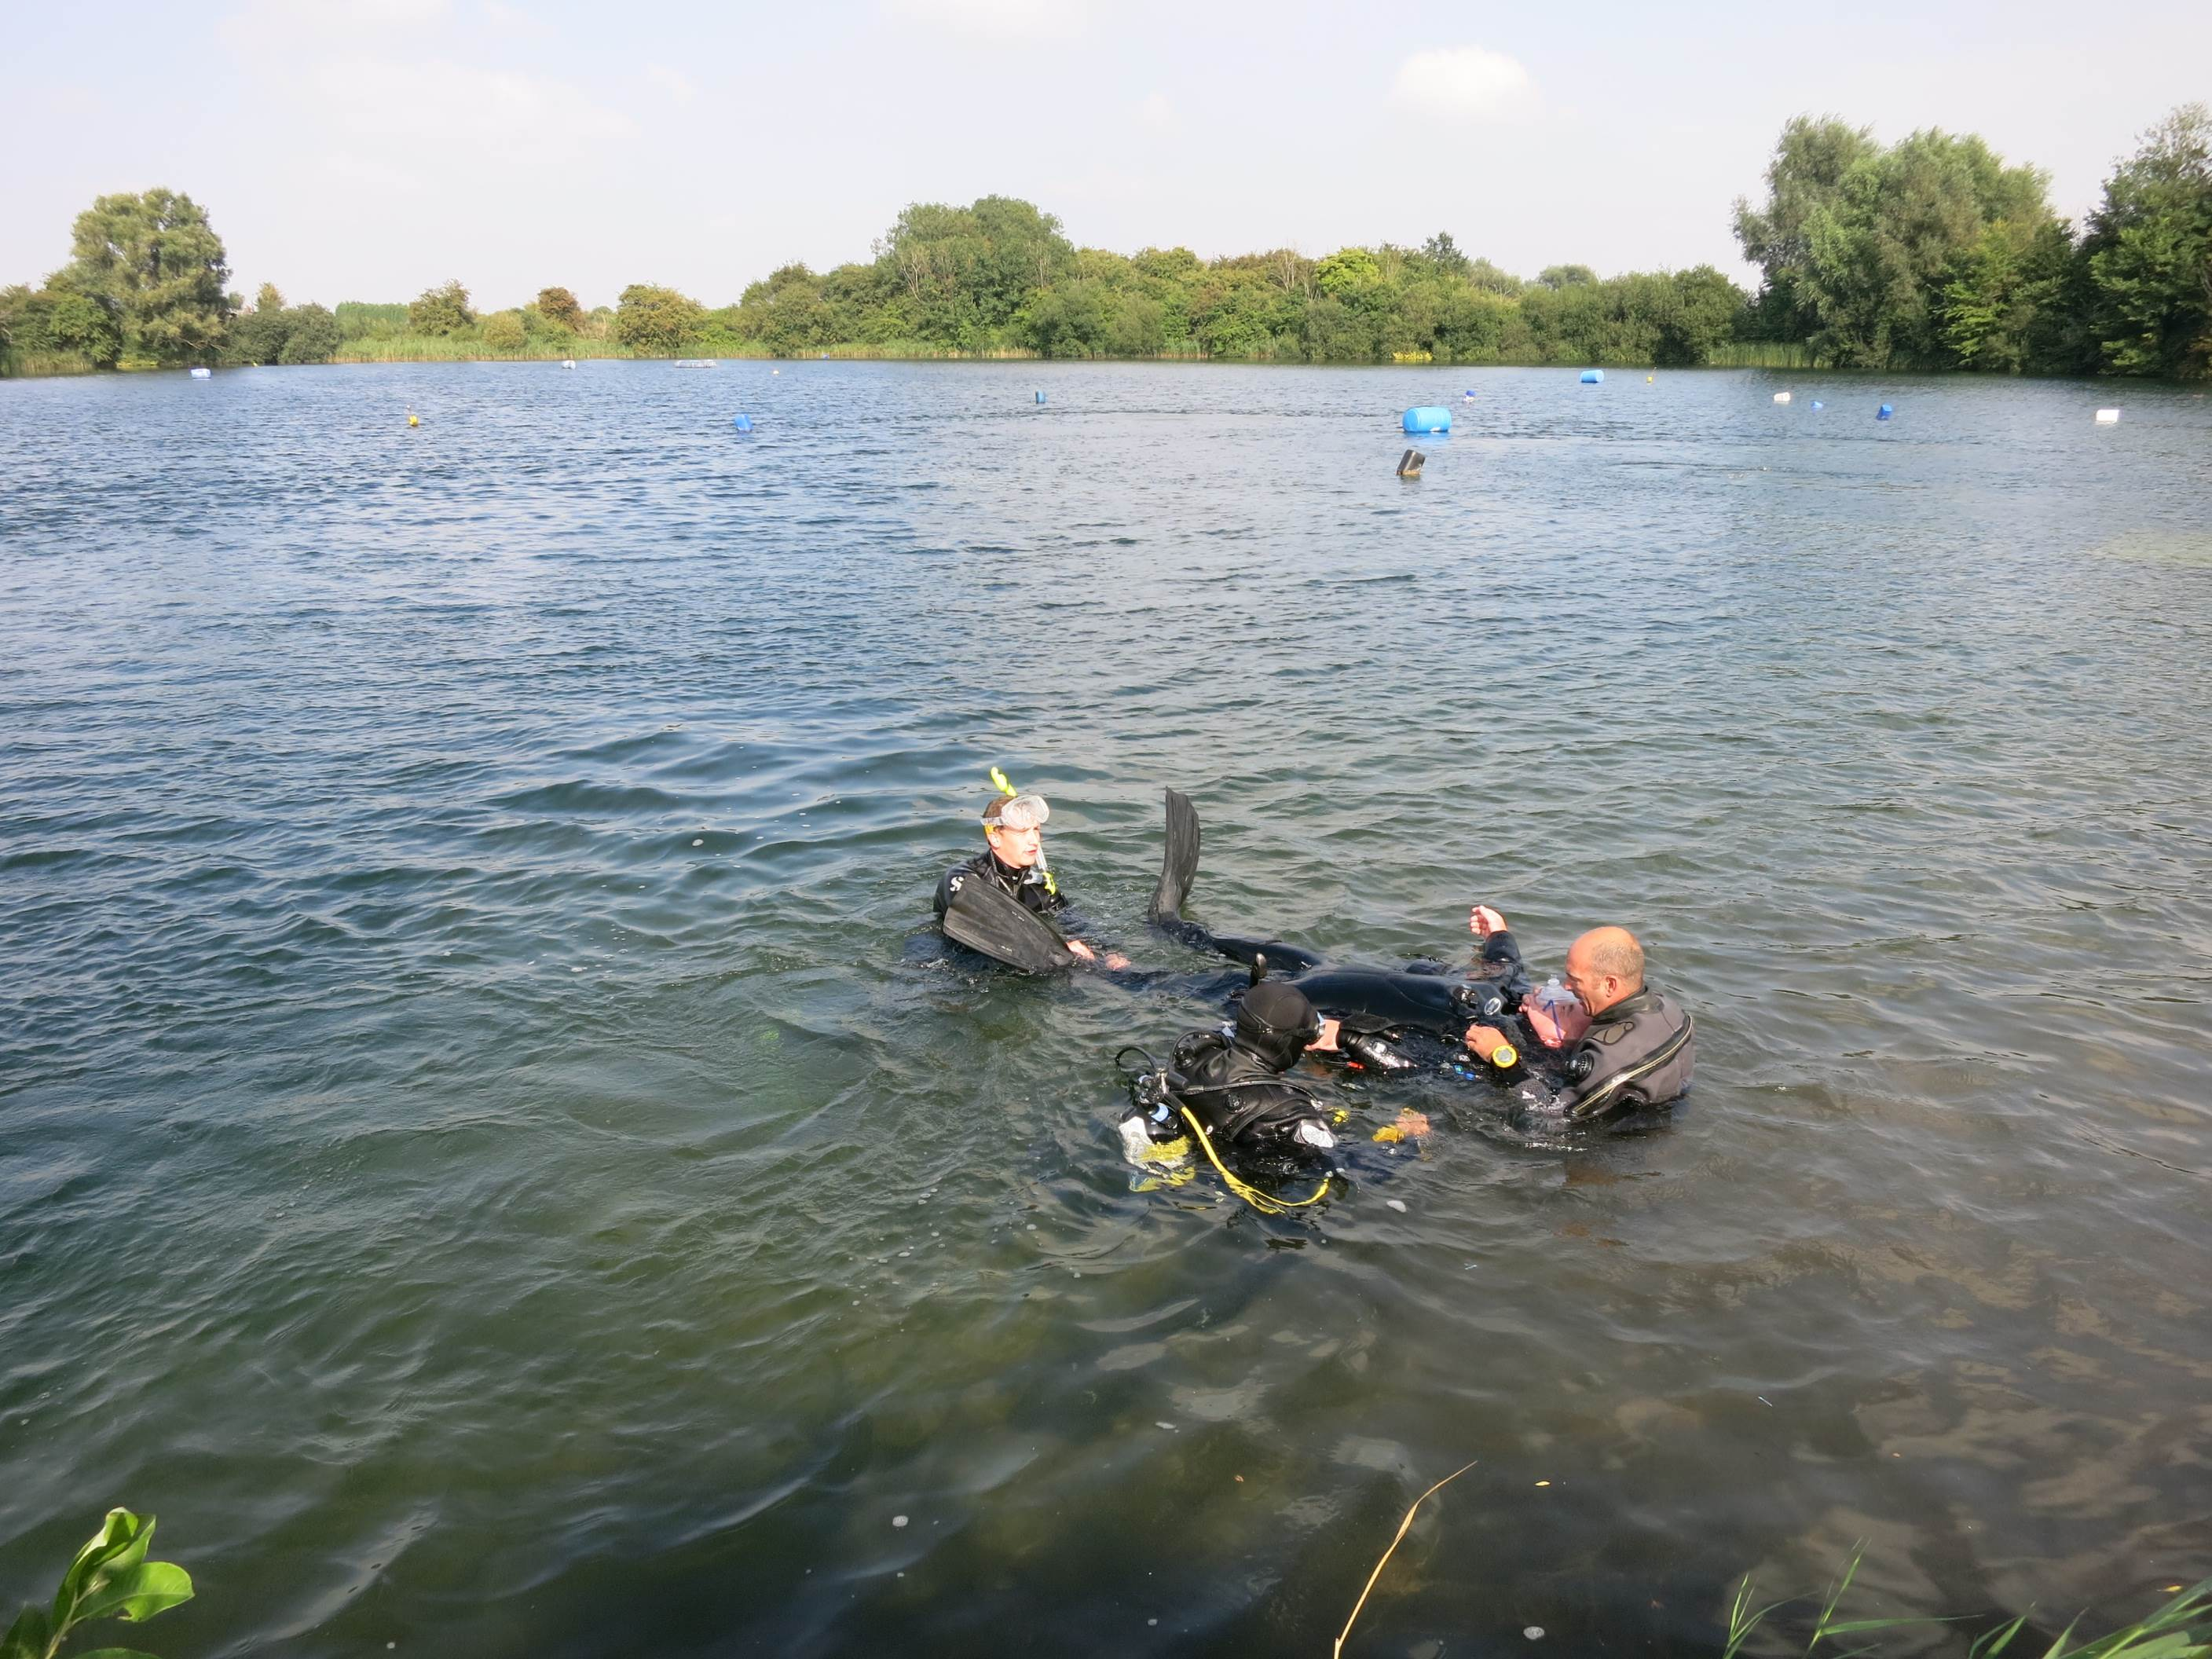 PADI Open Water Scuba training and qualifications at our Essex dive school